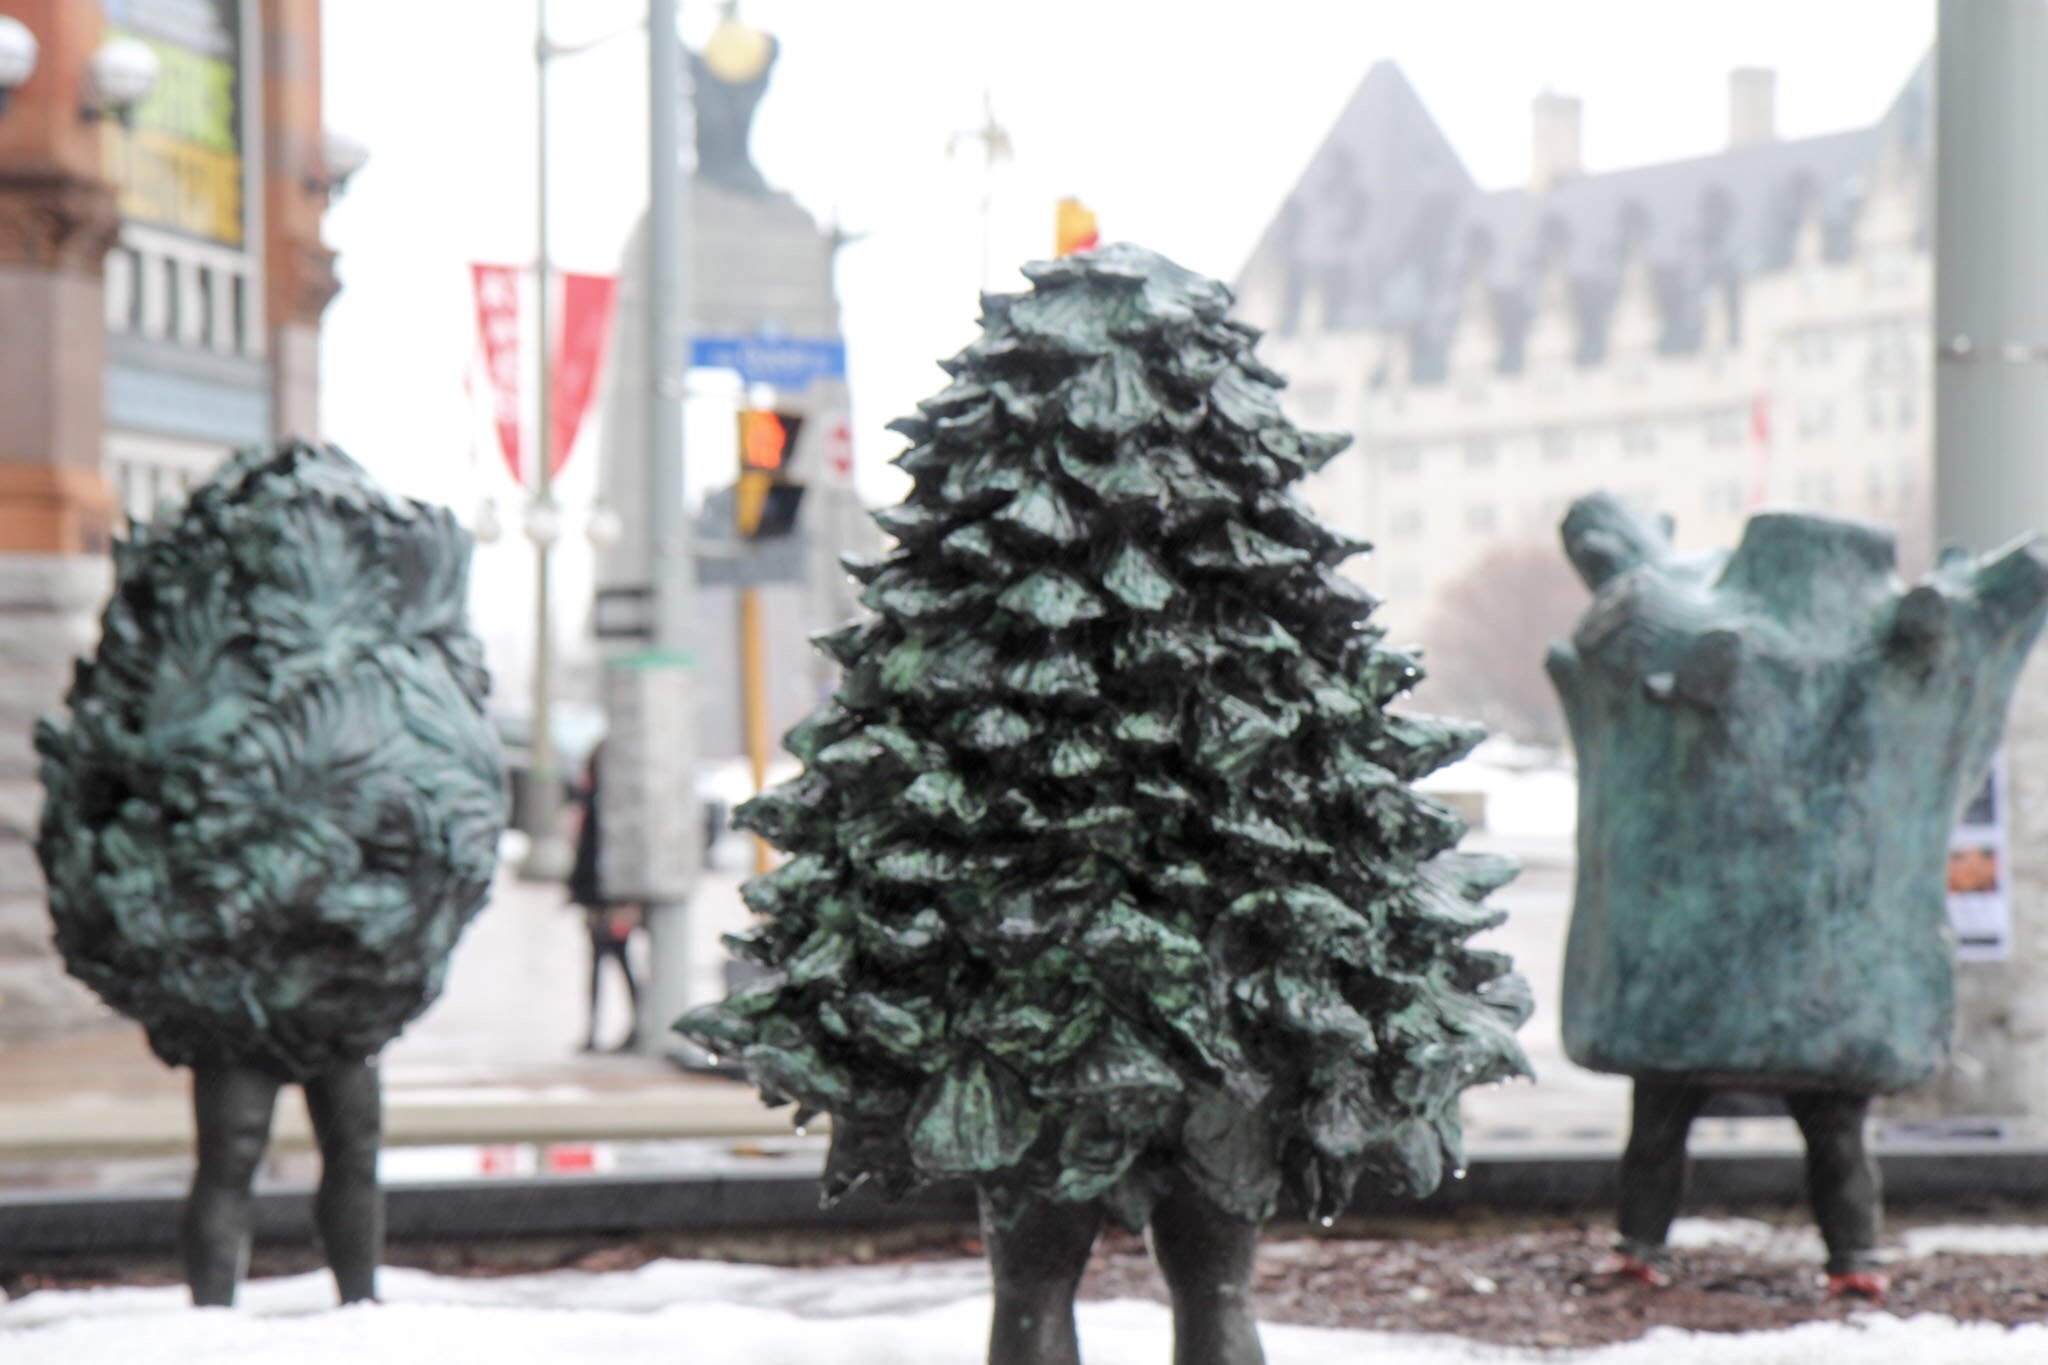 DYK: These 3 statues in front of our building are by Welsh artist Laura Ford. They're called the Nature Girls. #WalesFacts #OttCity https://t.co/AJU8QO5rek